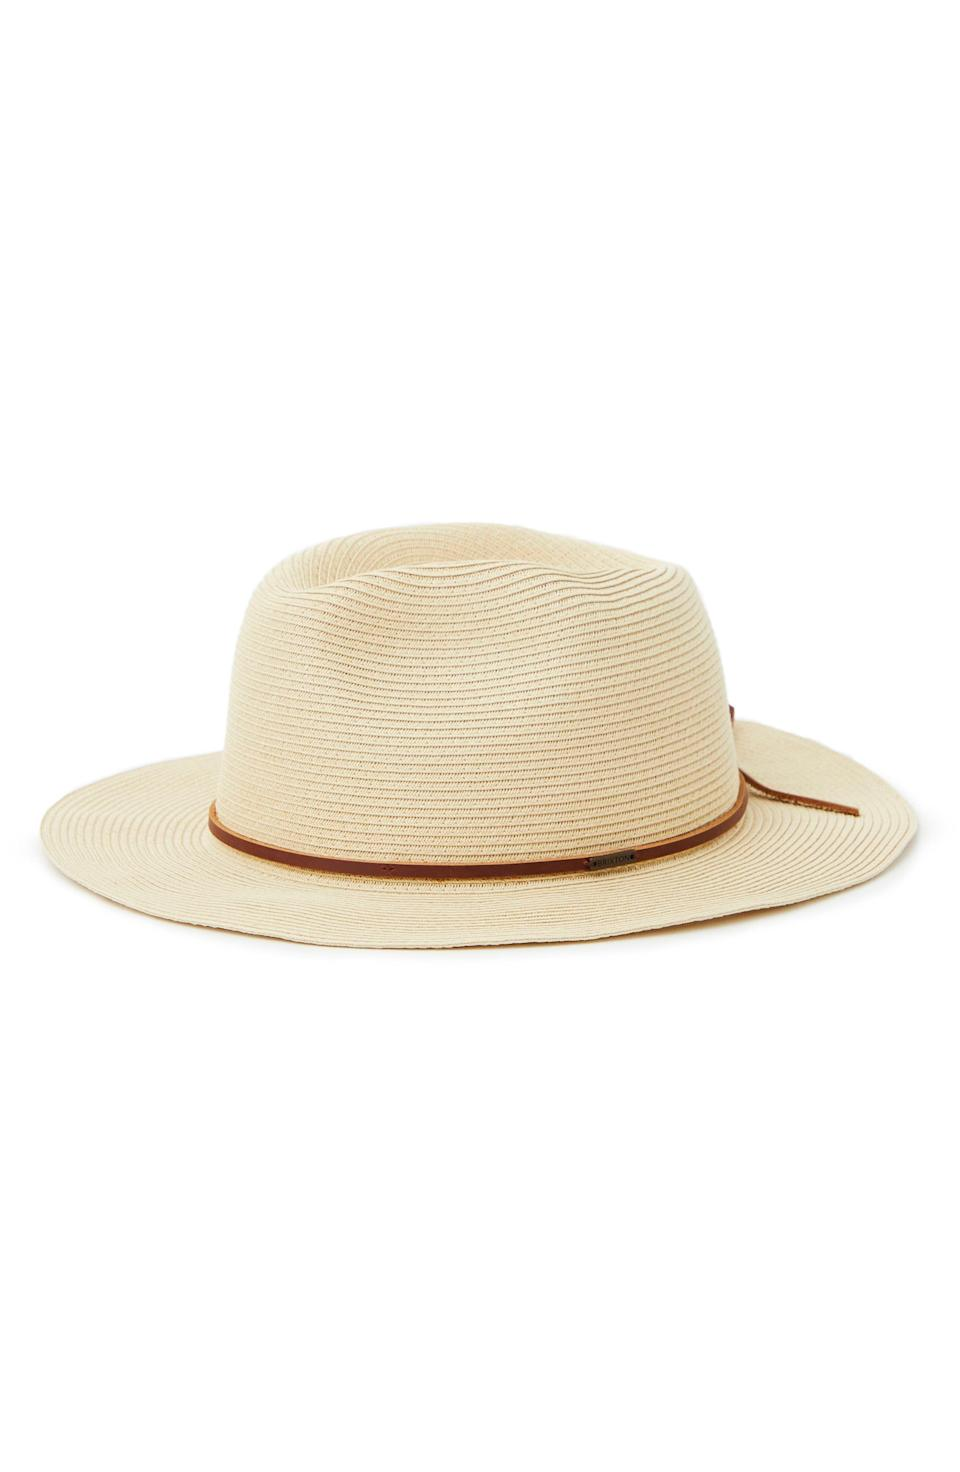 """<p><strong>Brixton</strong></p><p>nordstrom.com</p><p><a href=""""https://go.redirectingat.com?id=74968X1596630&url=https%3A%2F%2Fwww.nordstrom.com%2Fs%2Fbrixton-messer-straw-fedora%2F5925834&sref=https%3A%2F%2Fwww.esquire.com%2Fstyle%2Fmens-fashion%2Fg37002225%2Fnordstrom-anniversary-sale-mens-fashion-deals-2021%2F"""" rel=""""nofollow noopener"""" target=""""_blank"""" data-ylk=""""slk:Shop Now"""" class=""""link rapid-noclick-resp"""">Shop Now</a></p><p><strong>Sale: </strong><strong>$35.90</strong></p><p><strong>After Sale: $55.00</strong></p><p>The perfect topper for your beach-bound weekend. </p>"""